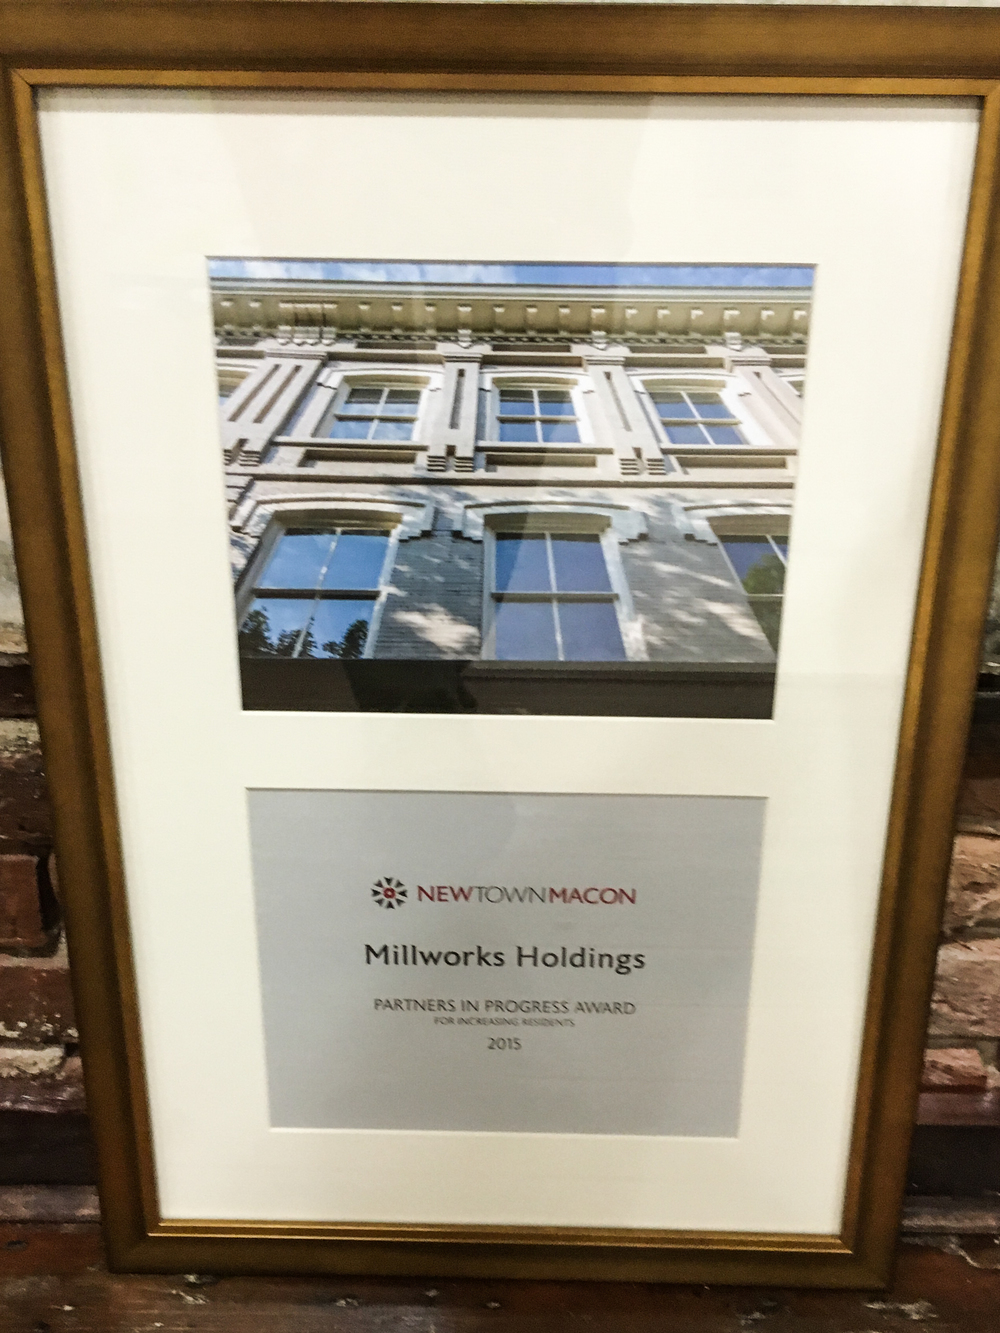 Millworks Holdings Partner in Progress Award